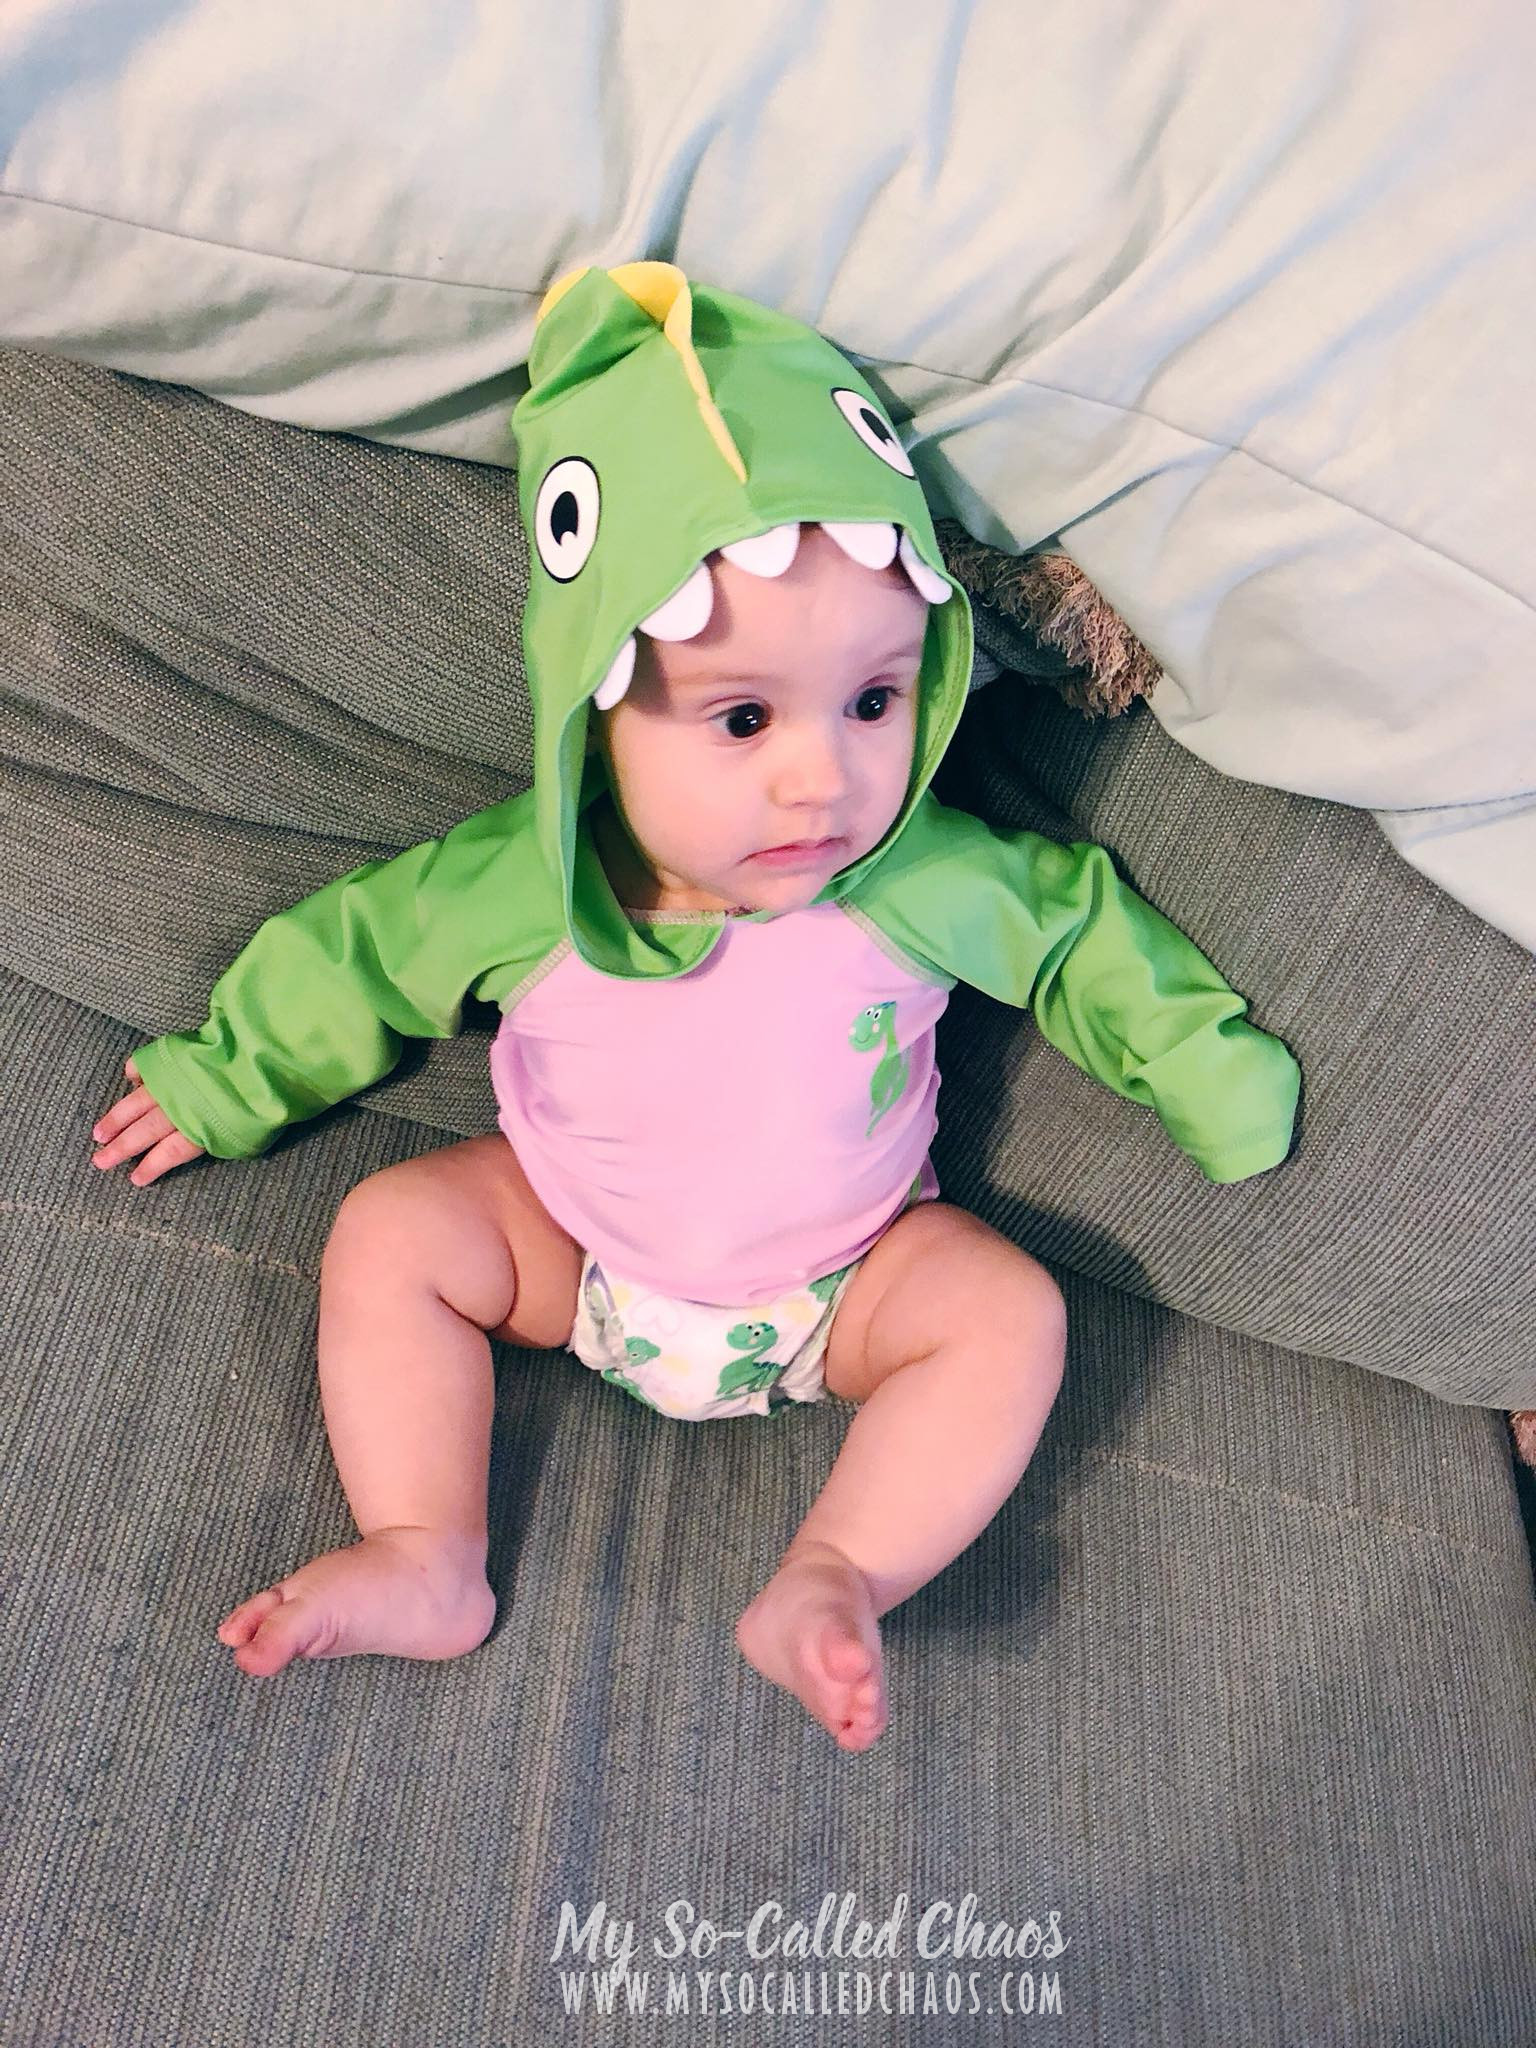 7 month old baby in a dinosaur swimsuit and rashguard.